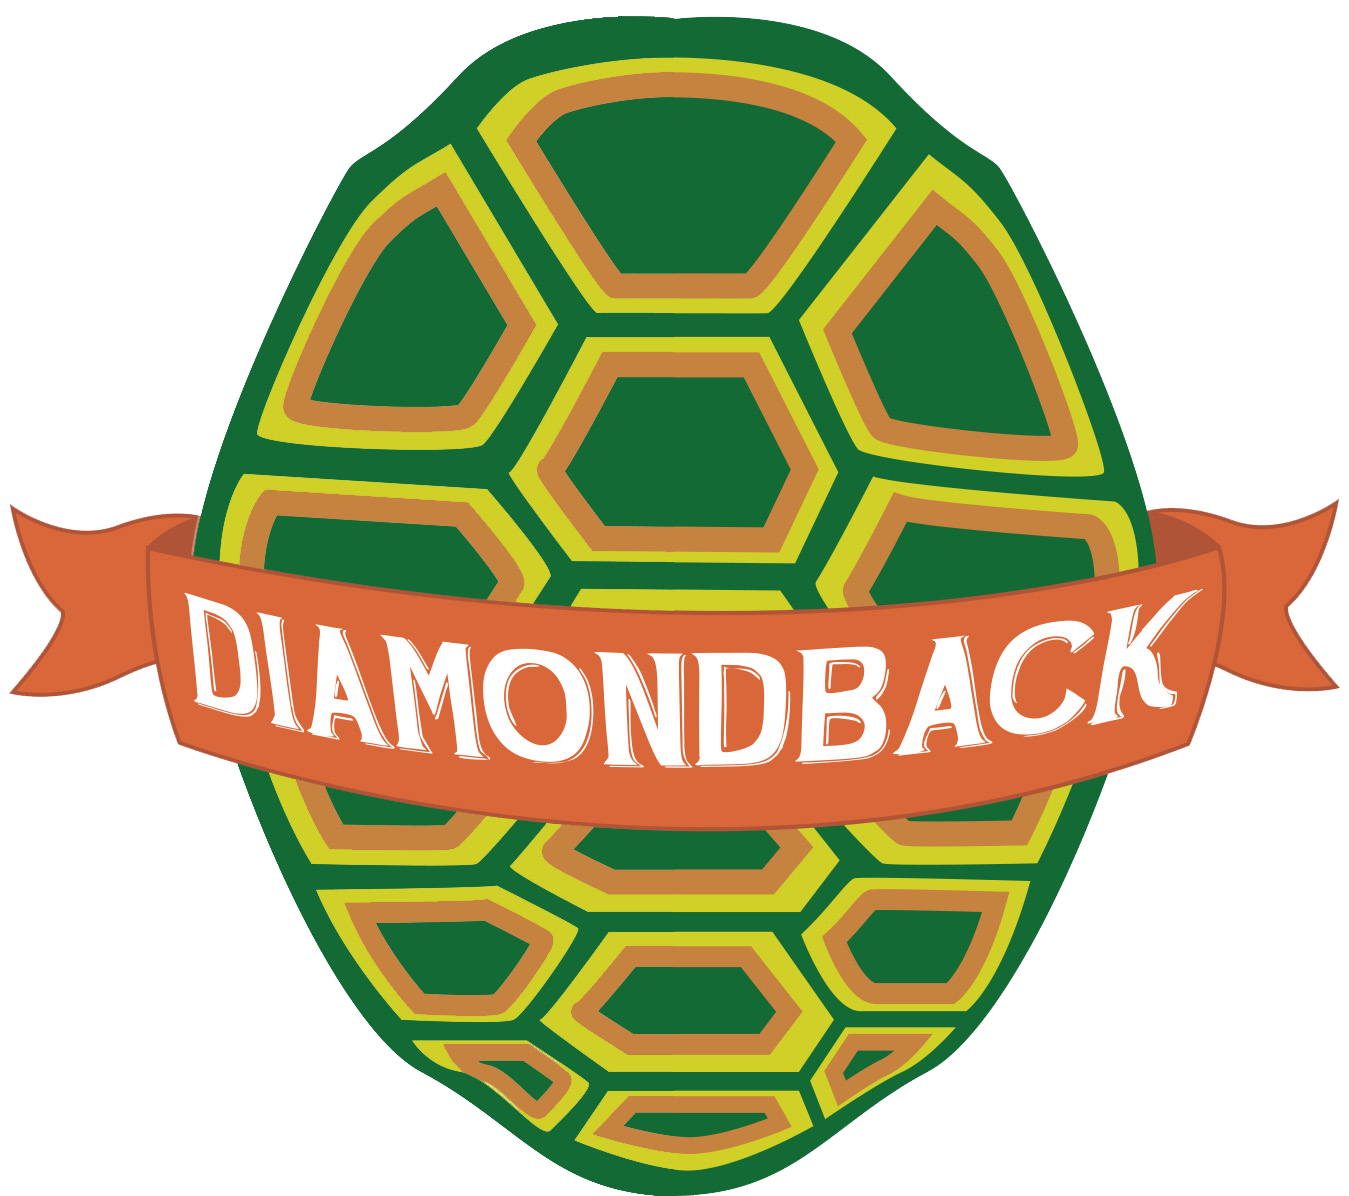 Diamondback Brewing Company